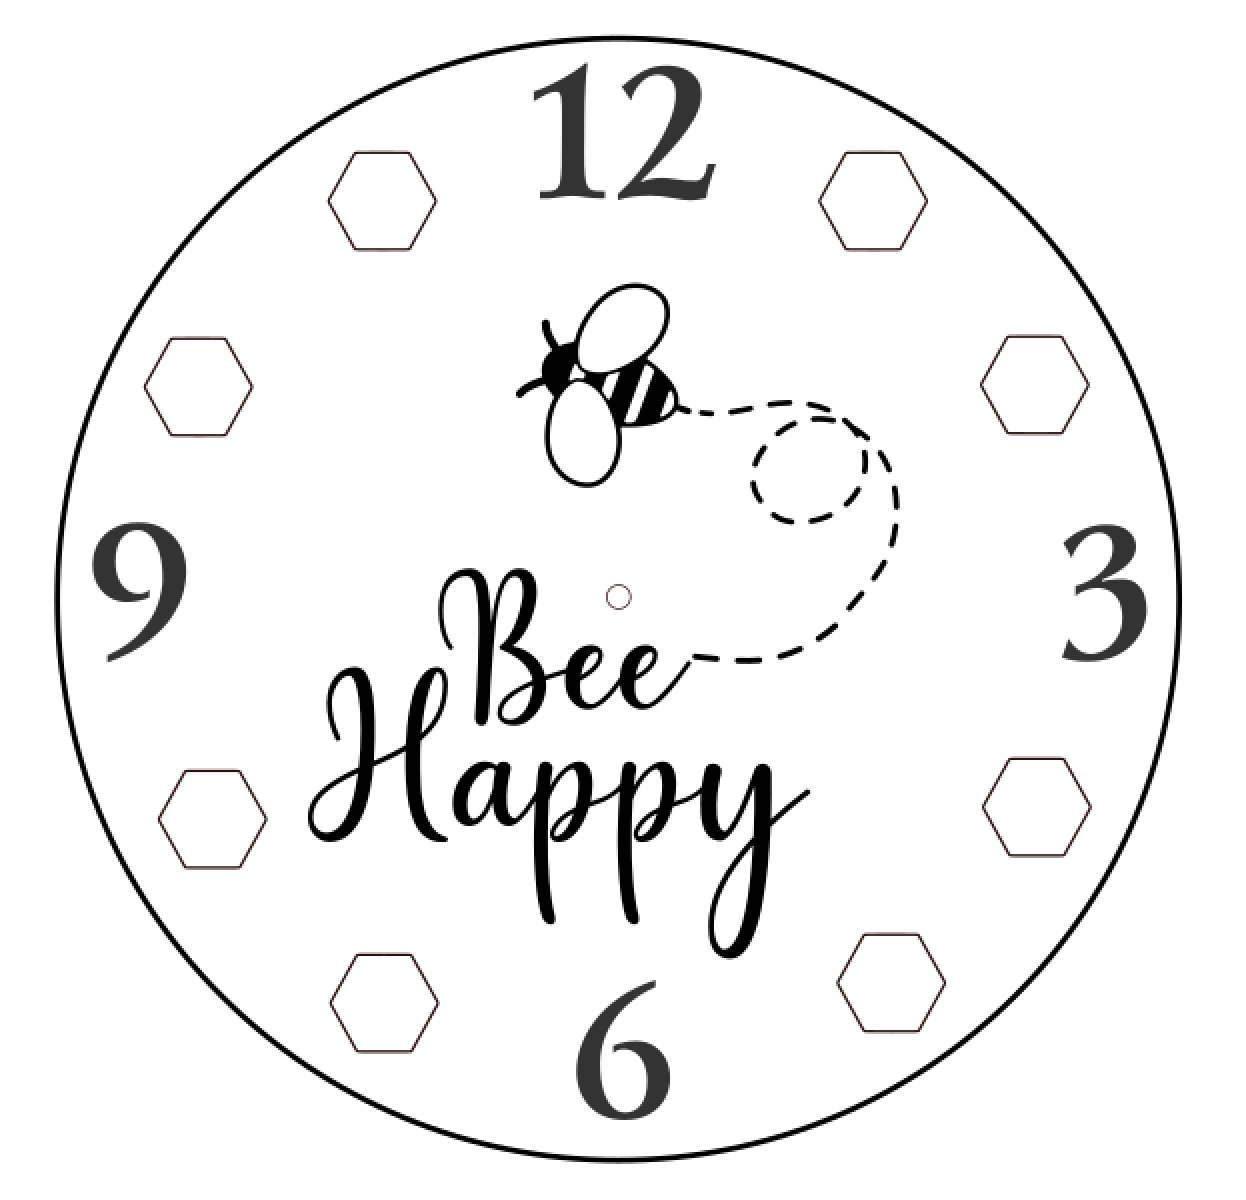 Design 5 Bee Happy Clock